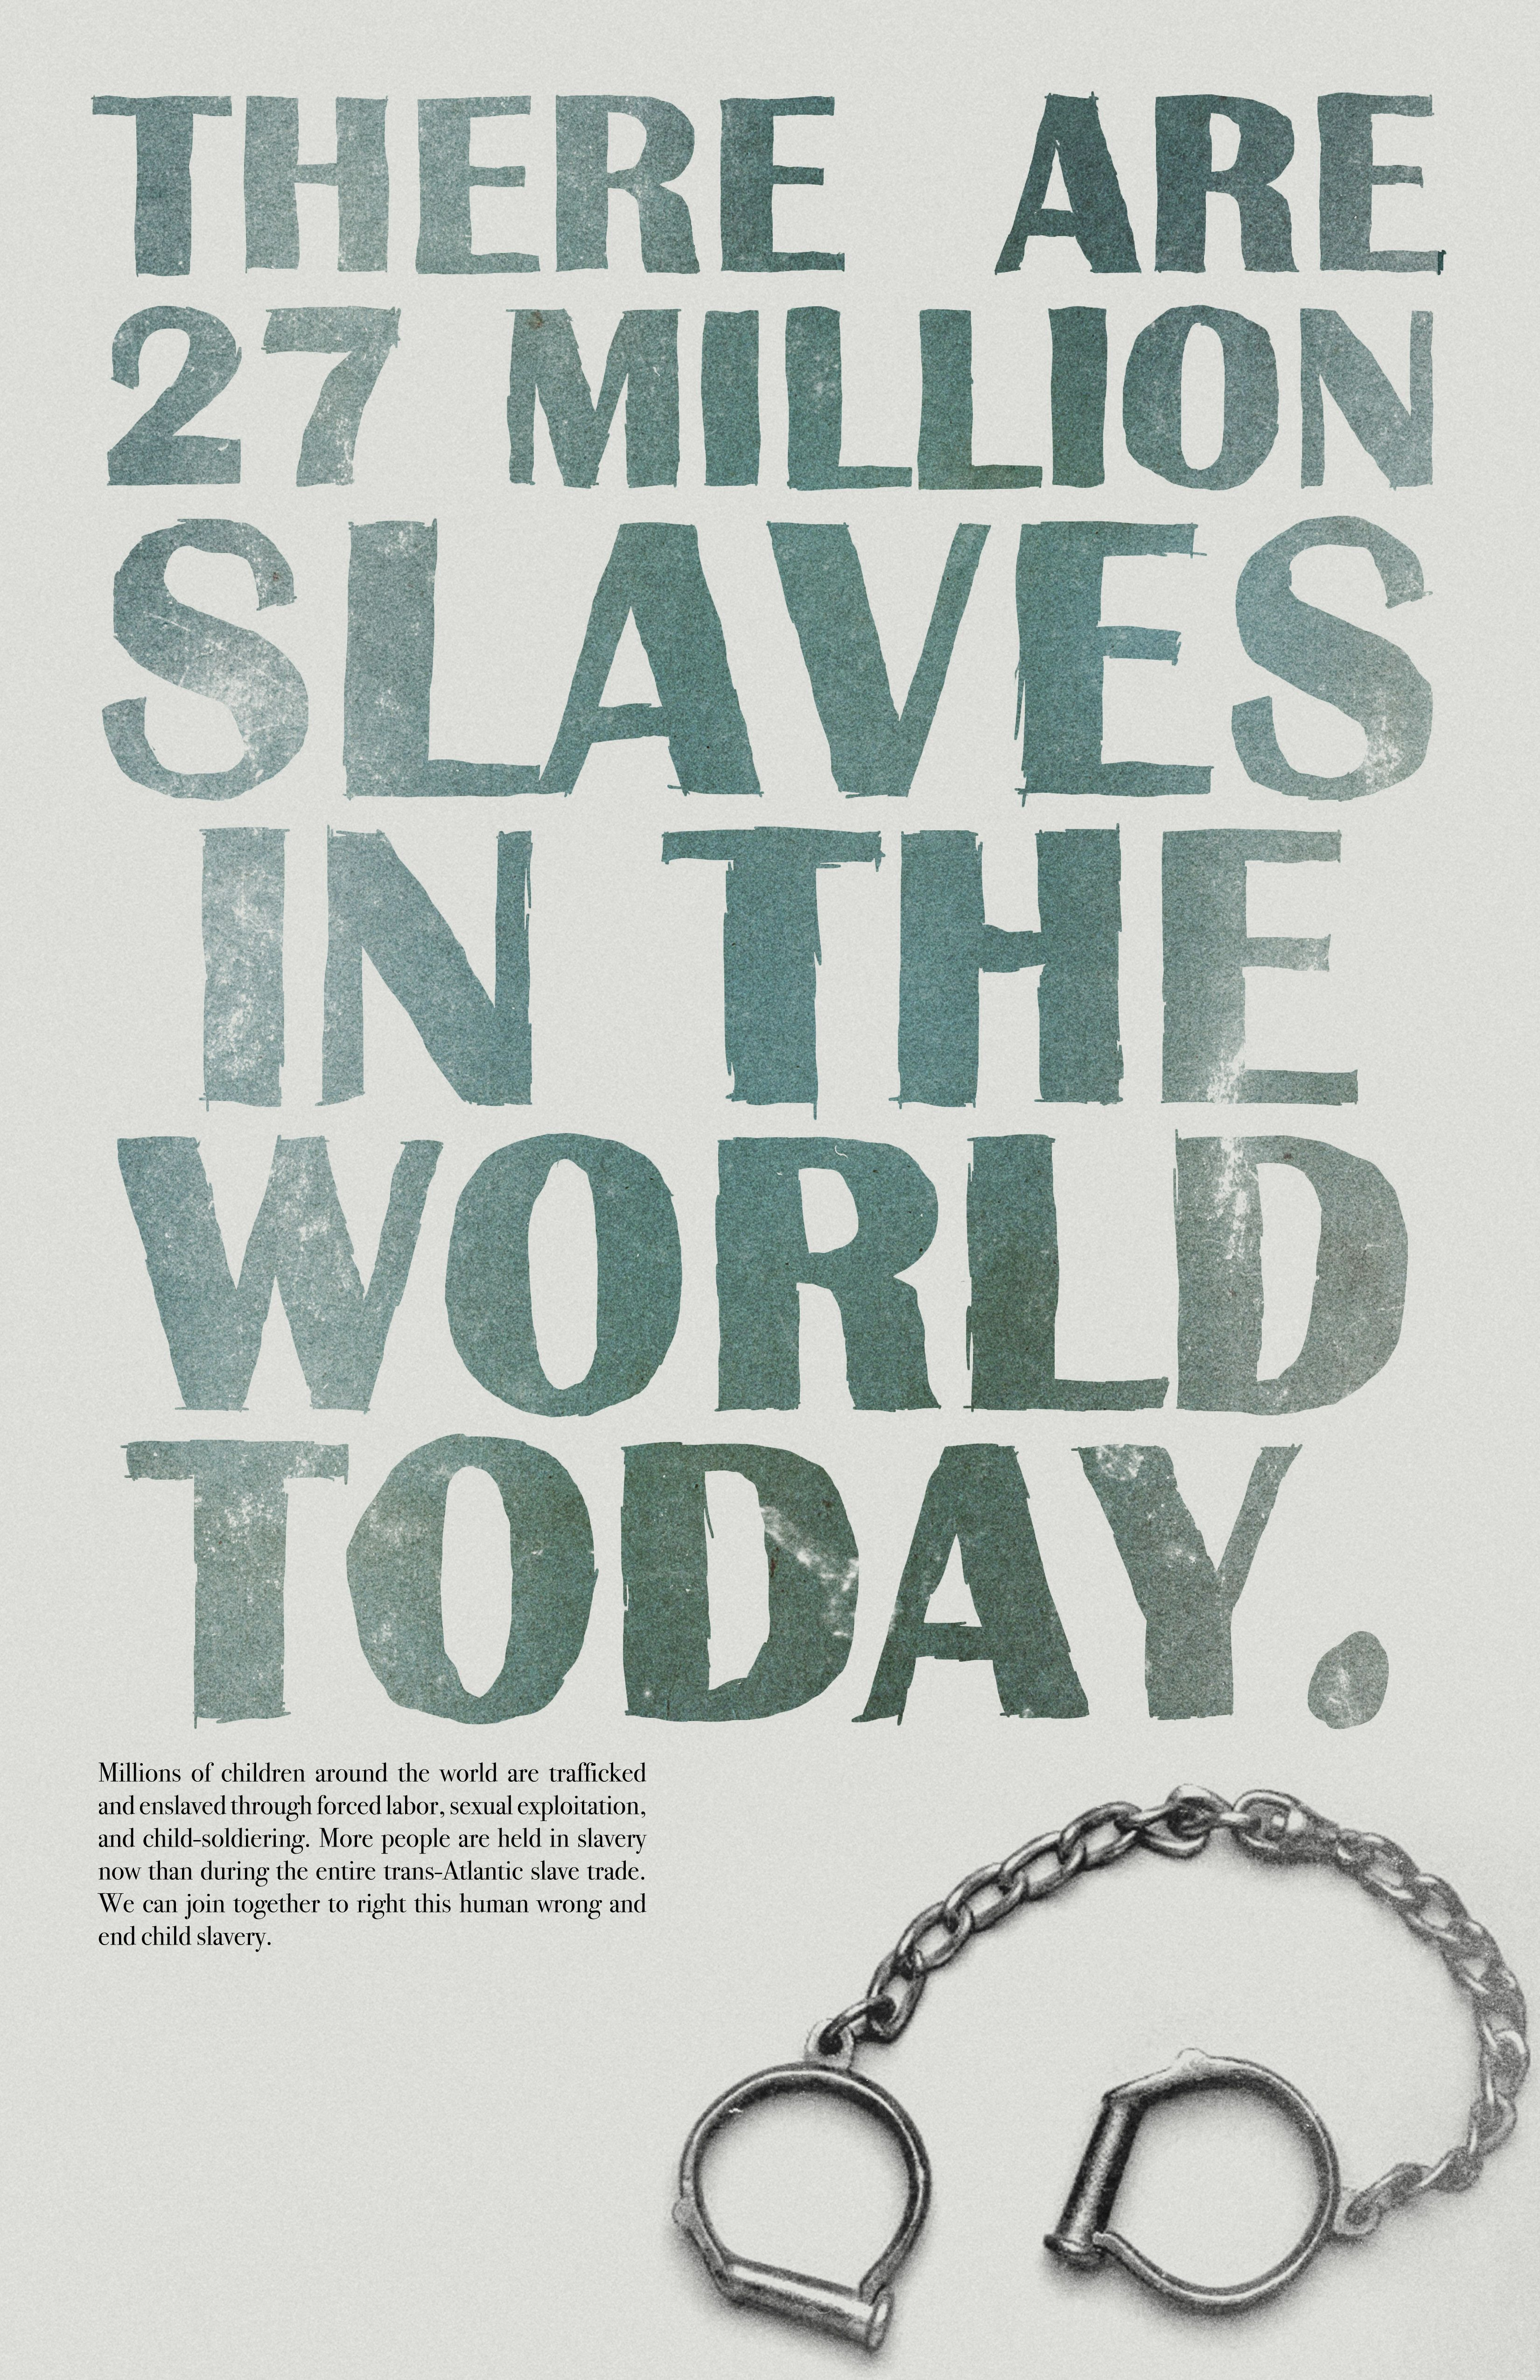 Together we can put an end to slavery and trafficking, in Jesus' name.